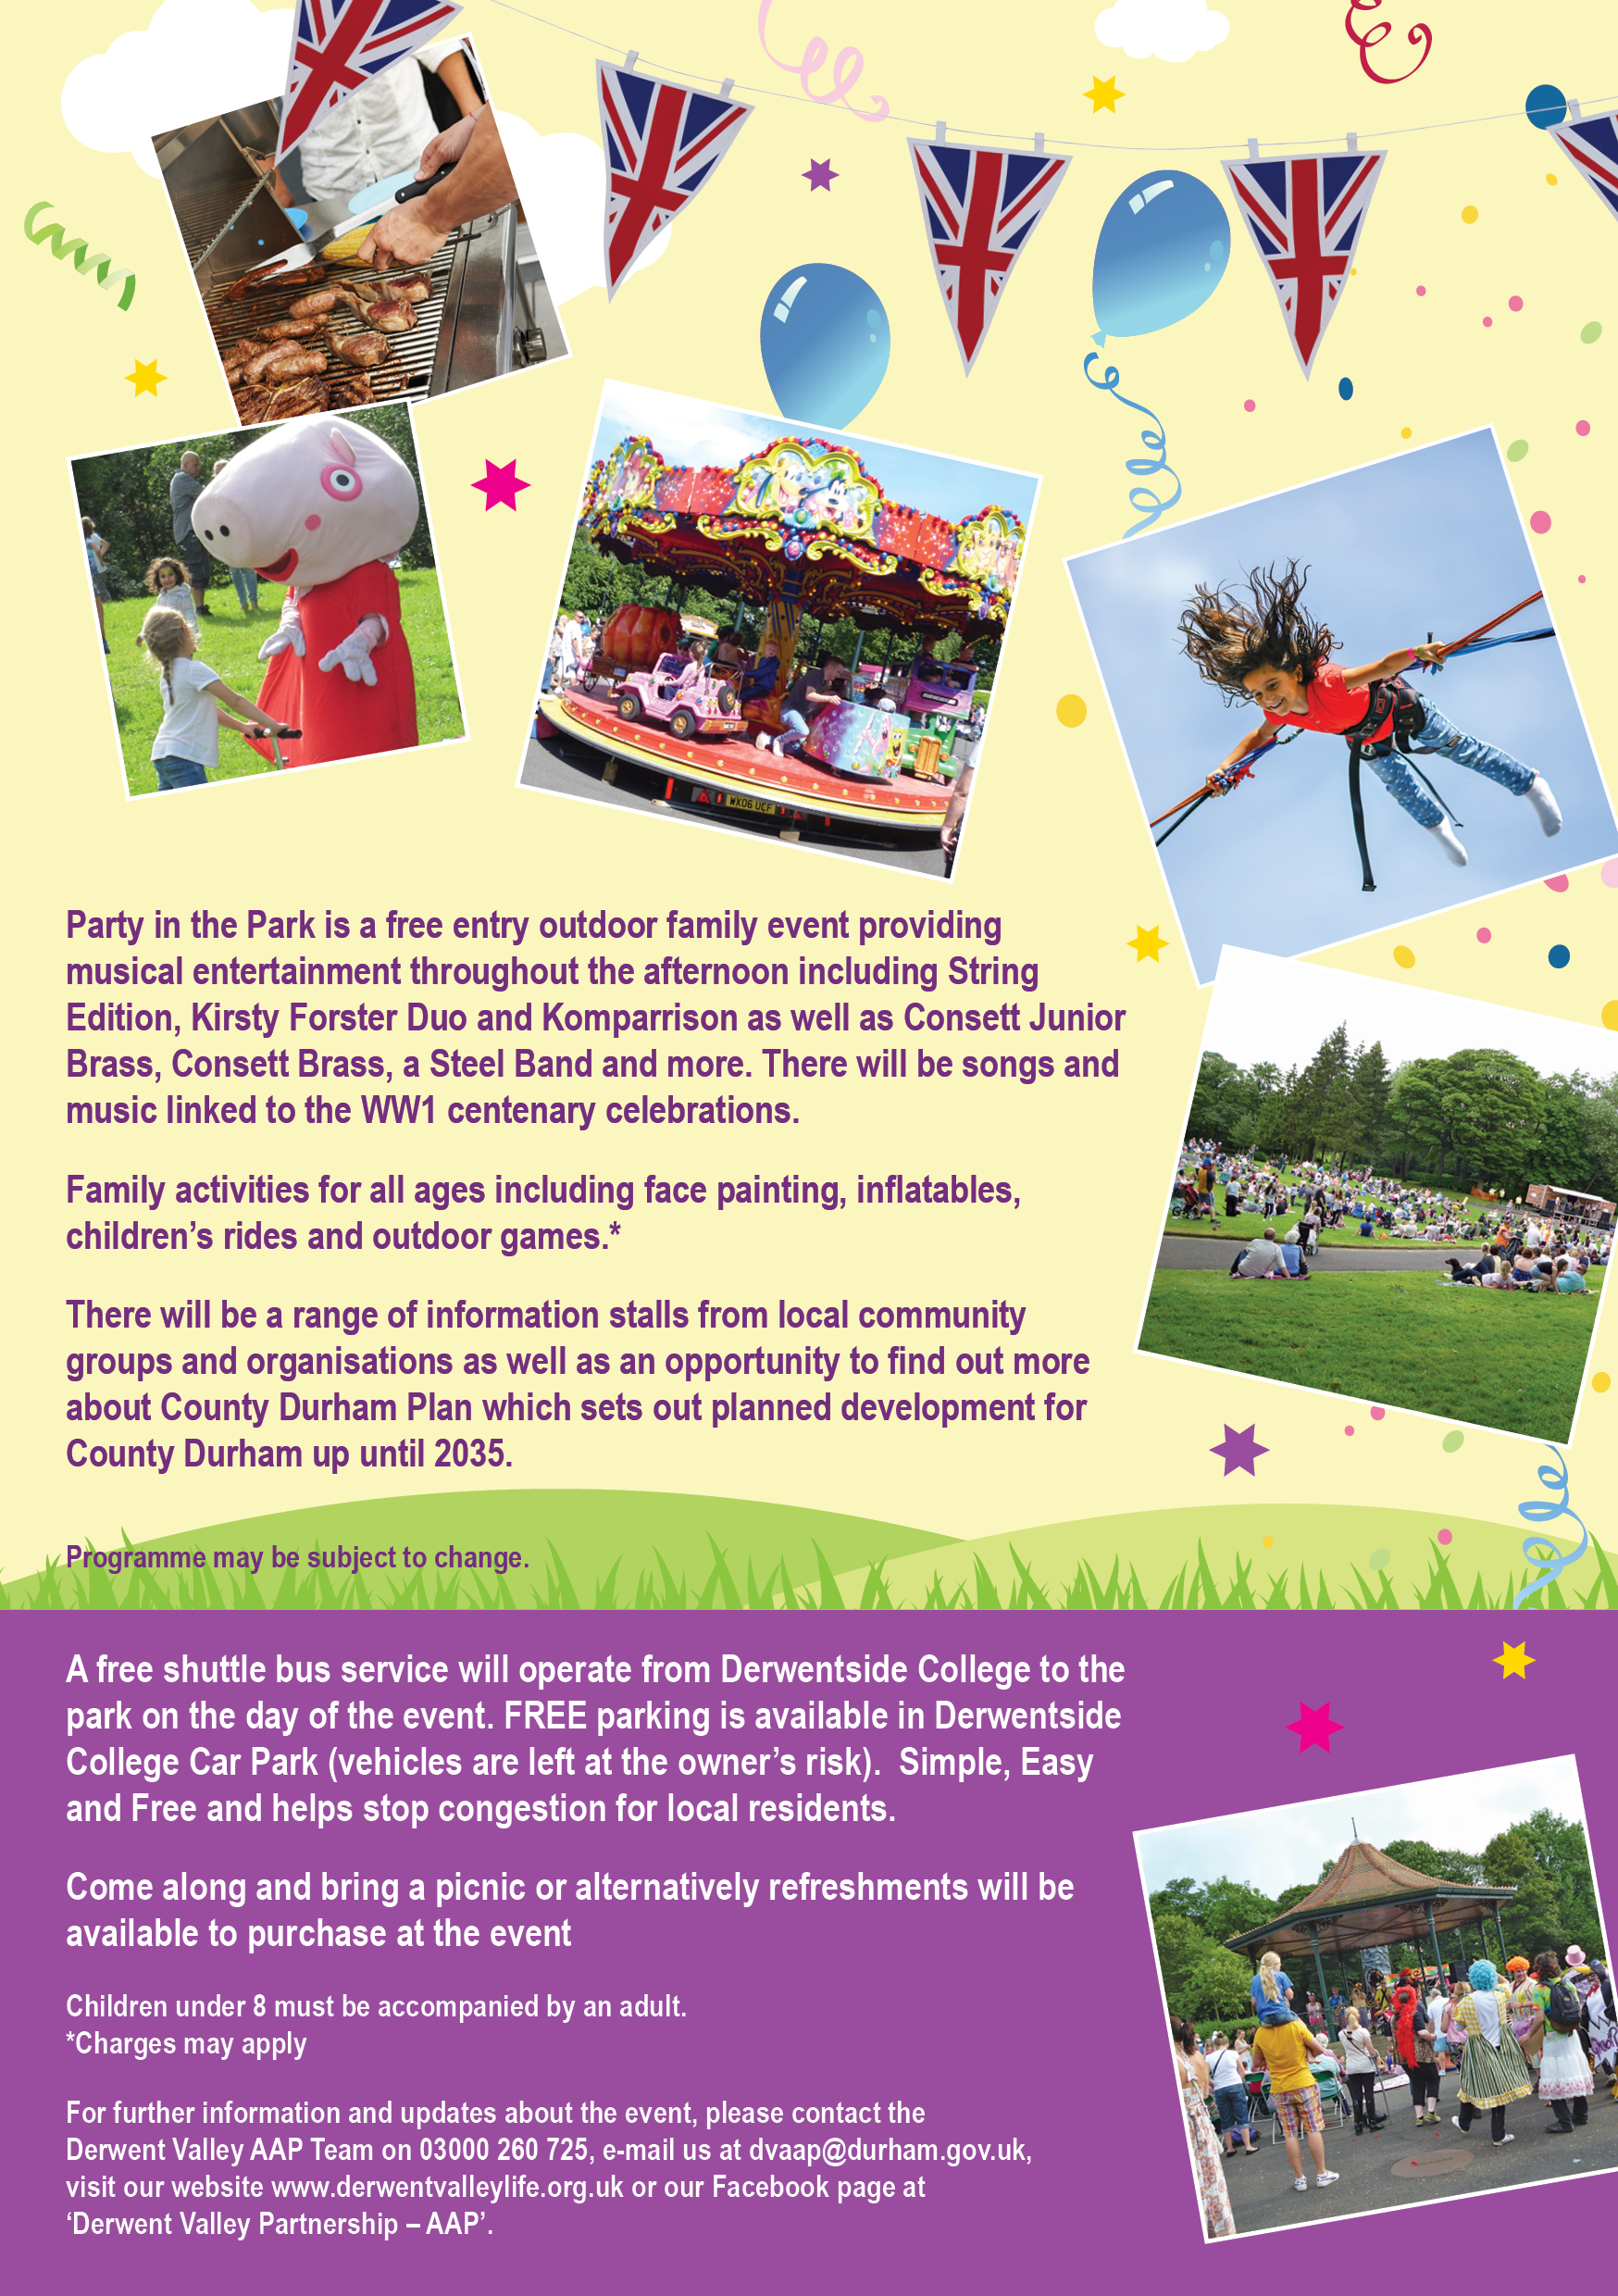 44240 AAP A5 Party in the Park Flyer 2018 2